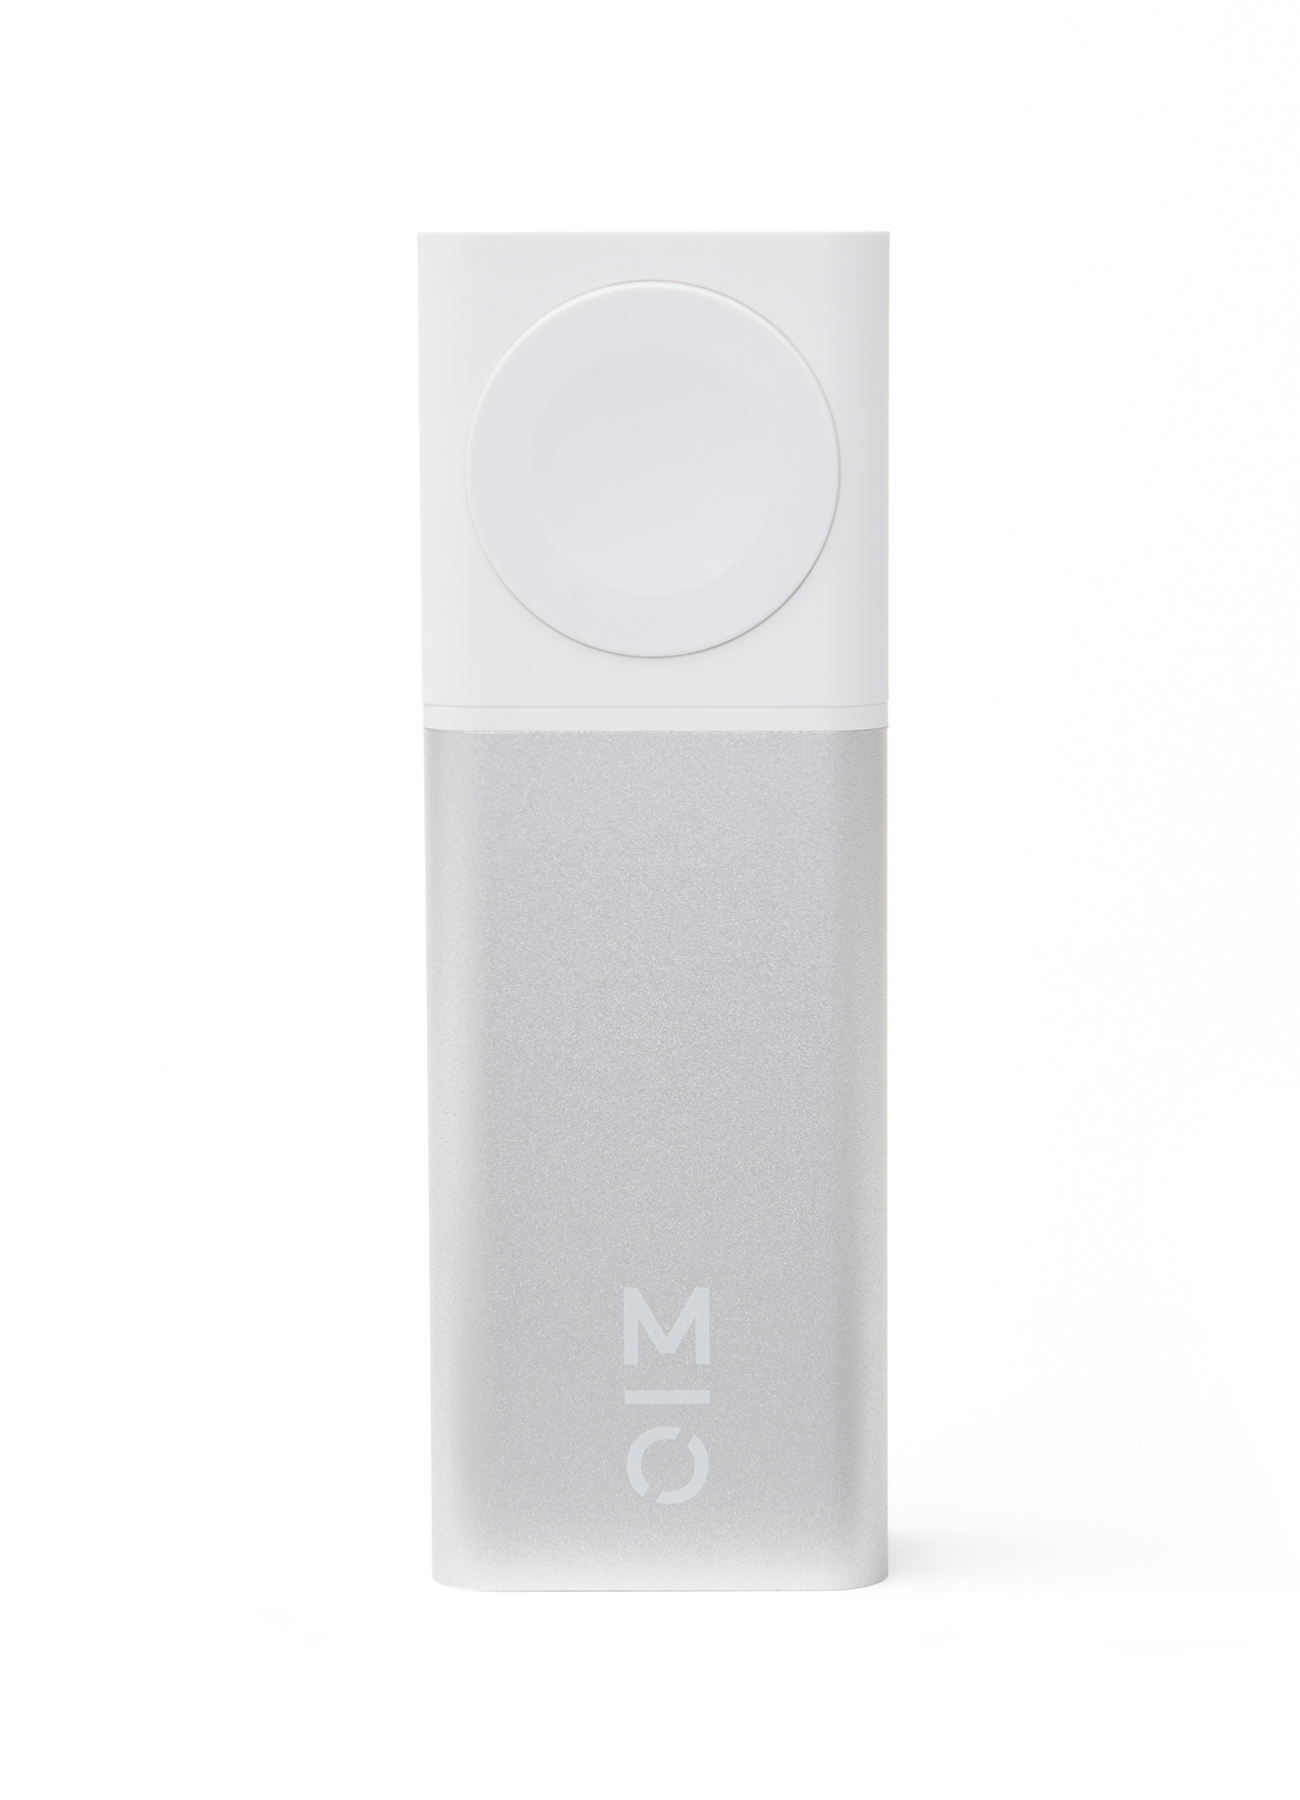 MOTILE™ Power Bank for Apple Watch®, Nickel